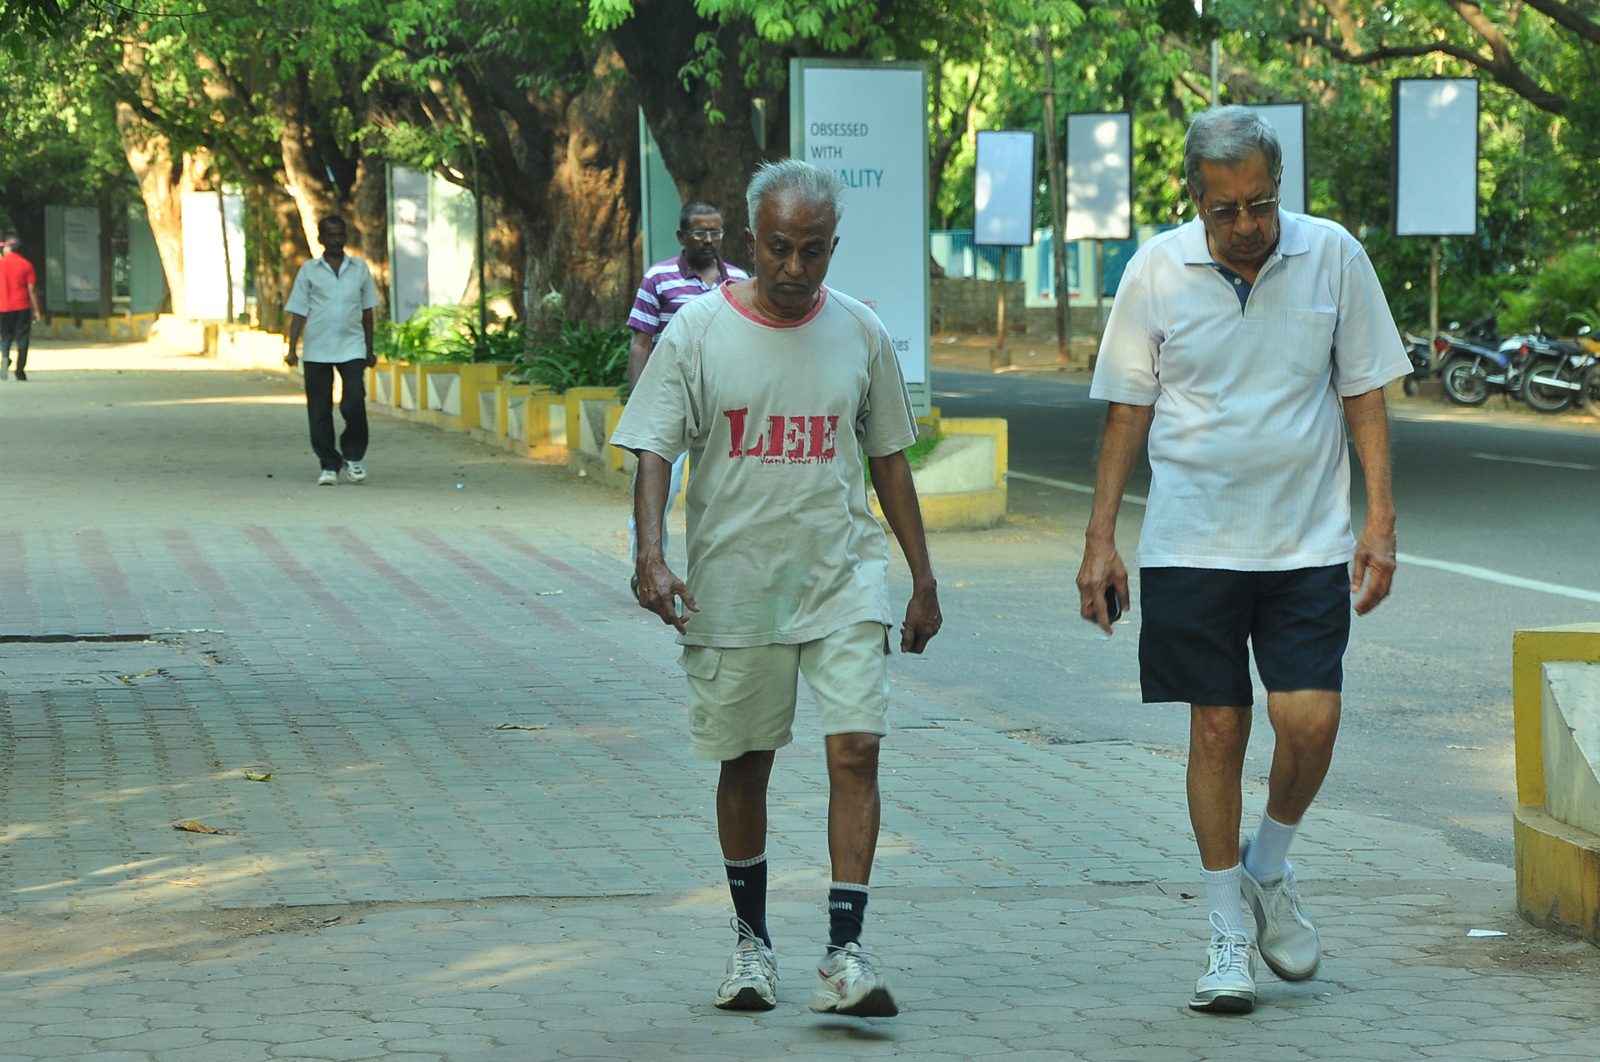 Pradeep damodaran inside kovai the walkers park in race course inside kovai the walkers park in race course encircles a small patch of land rich in history solutioingenieria Gallery